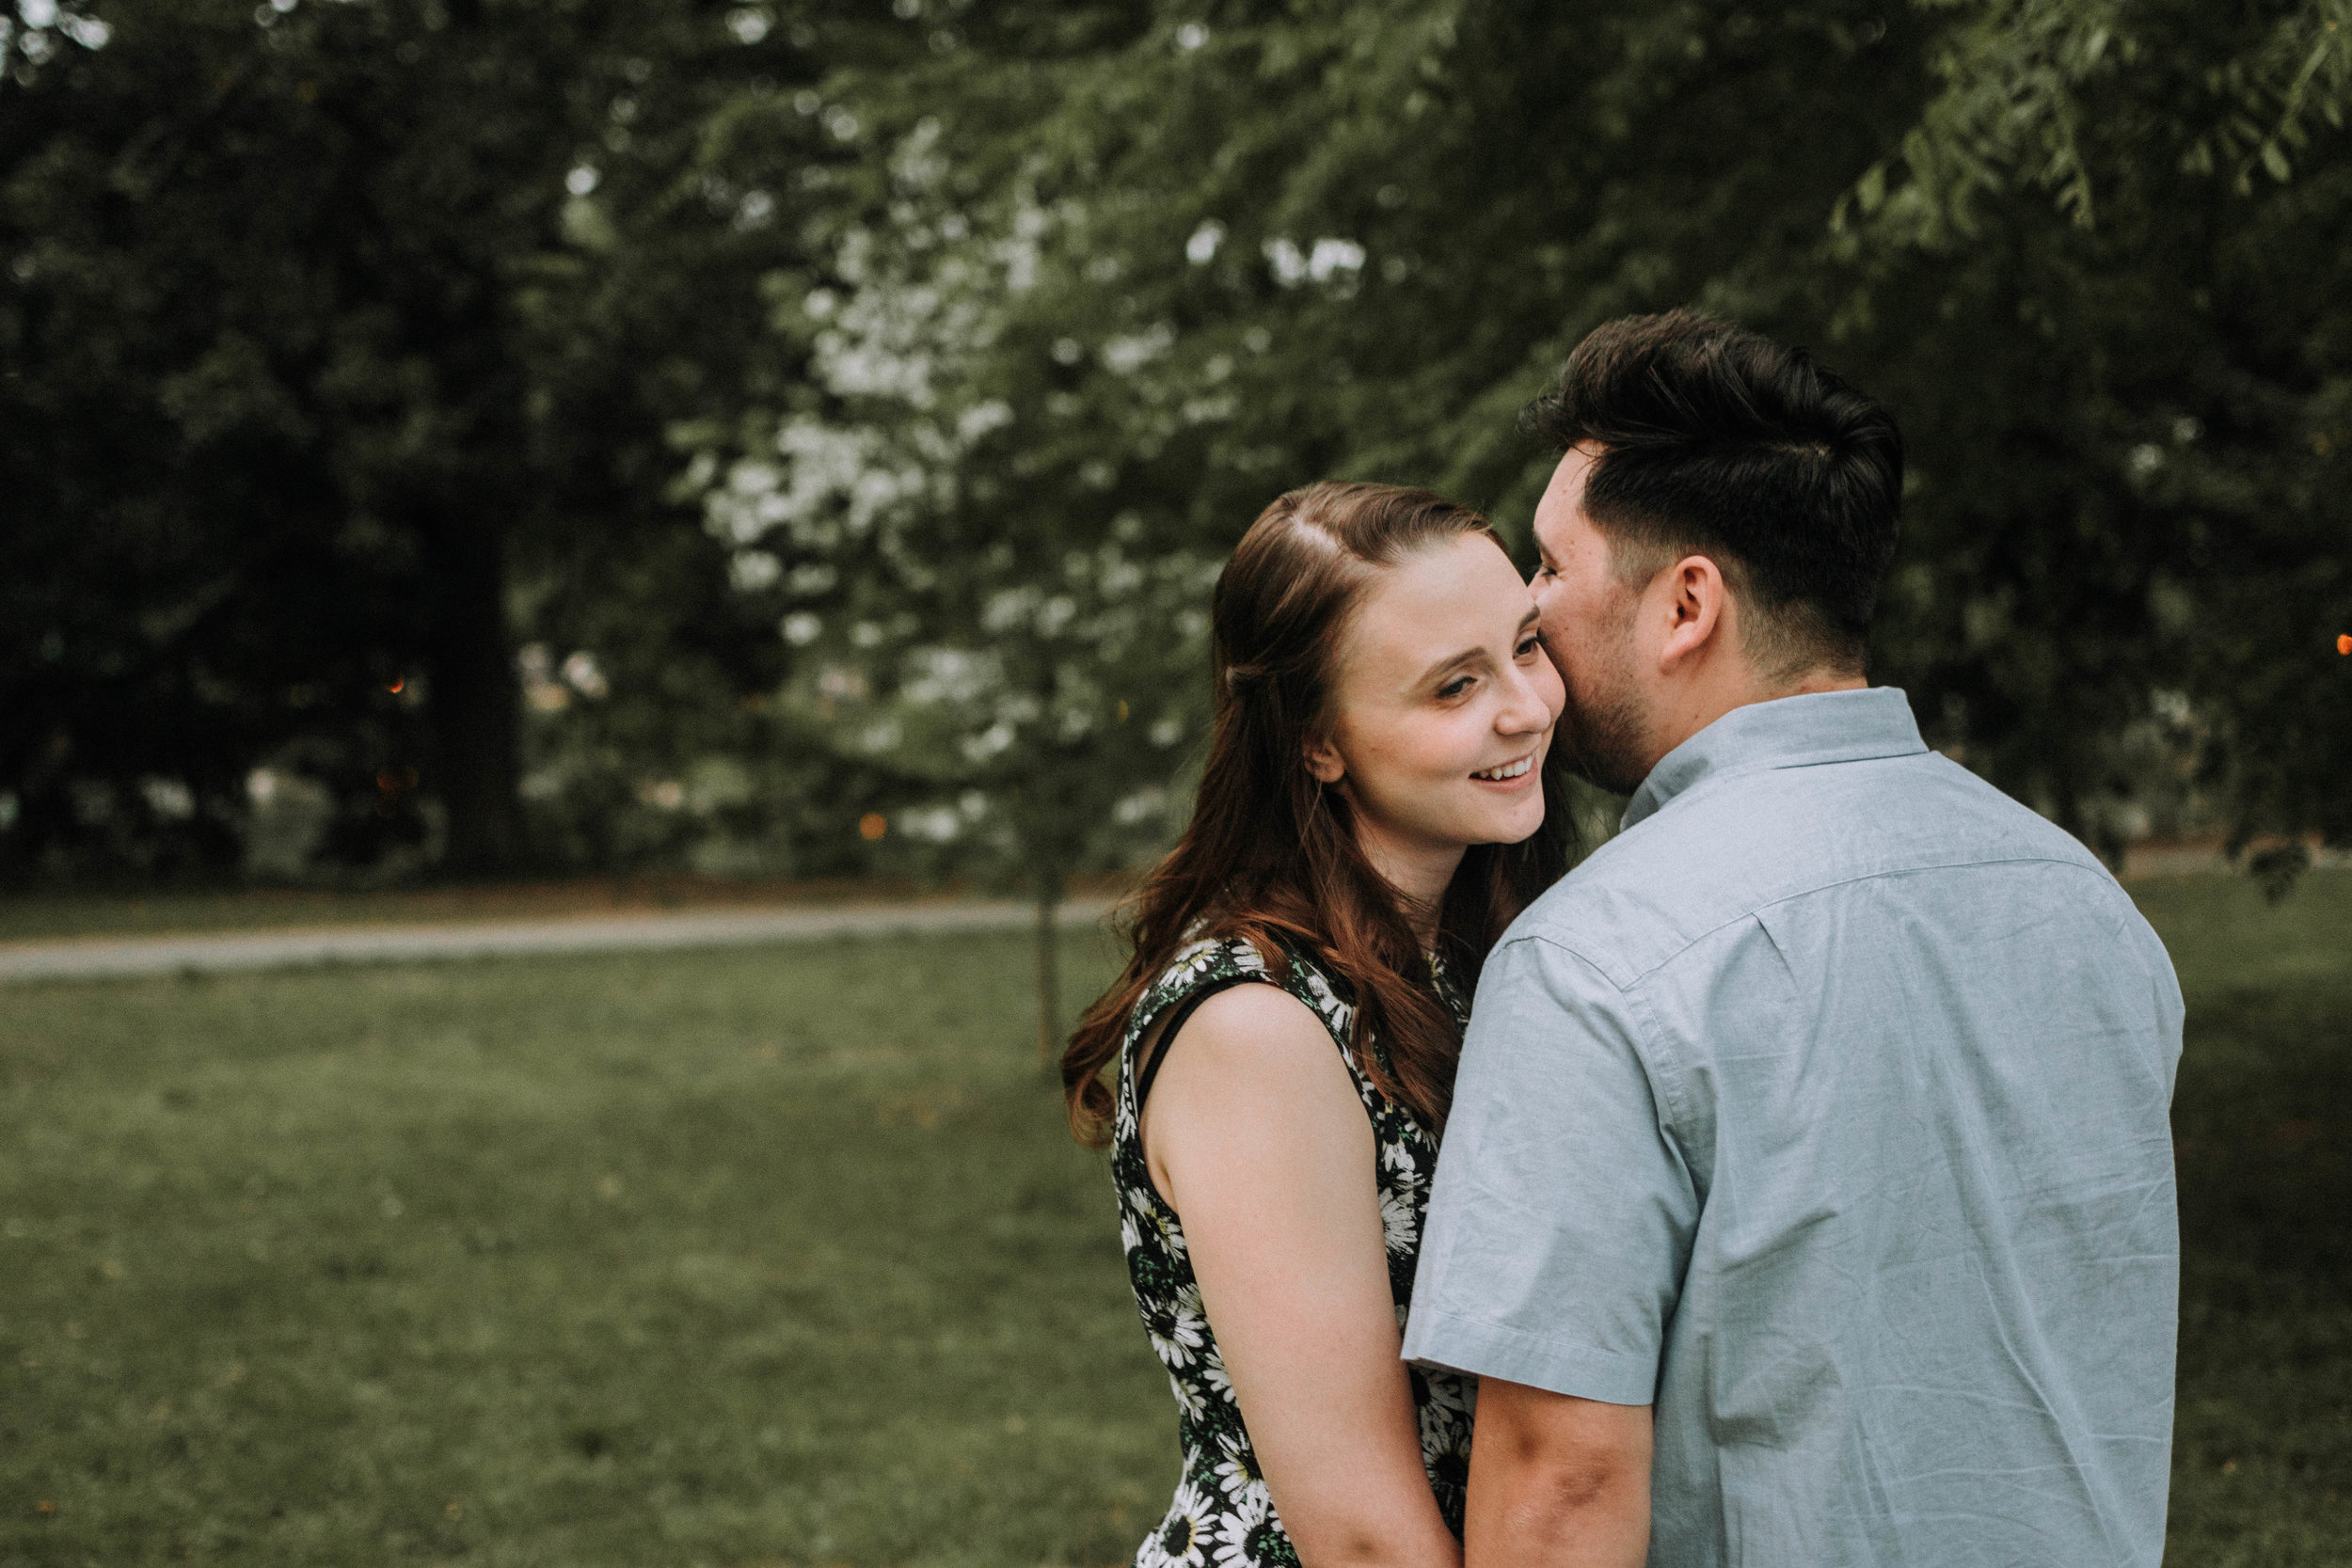 andi + miguel: engagement | spring 2019